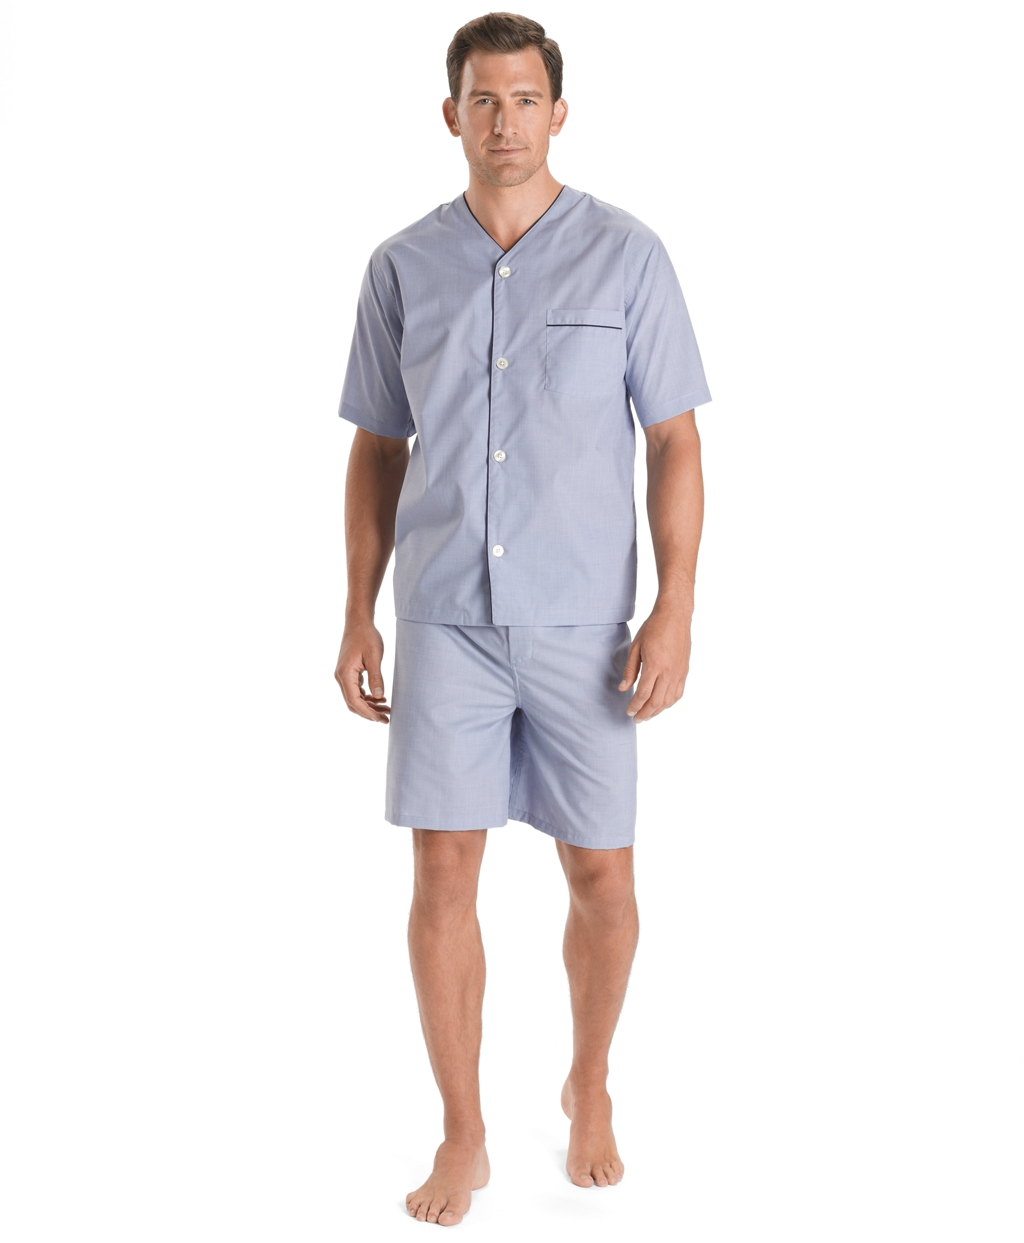 Men's Short Pajamas It doesn't matter what time of year it is, short pajamas for men are always in style. Pajama shorts are especially great for shorter guys.